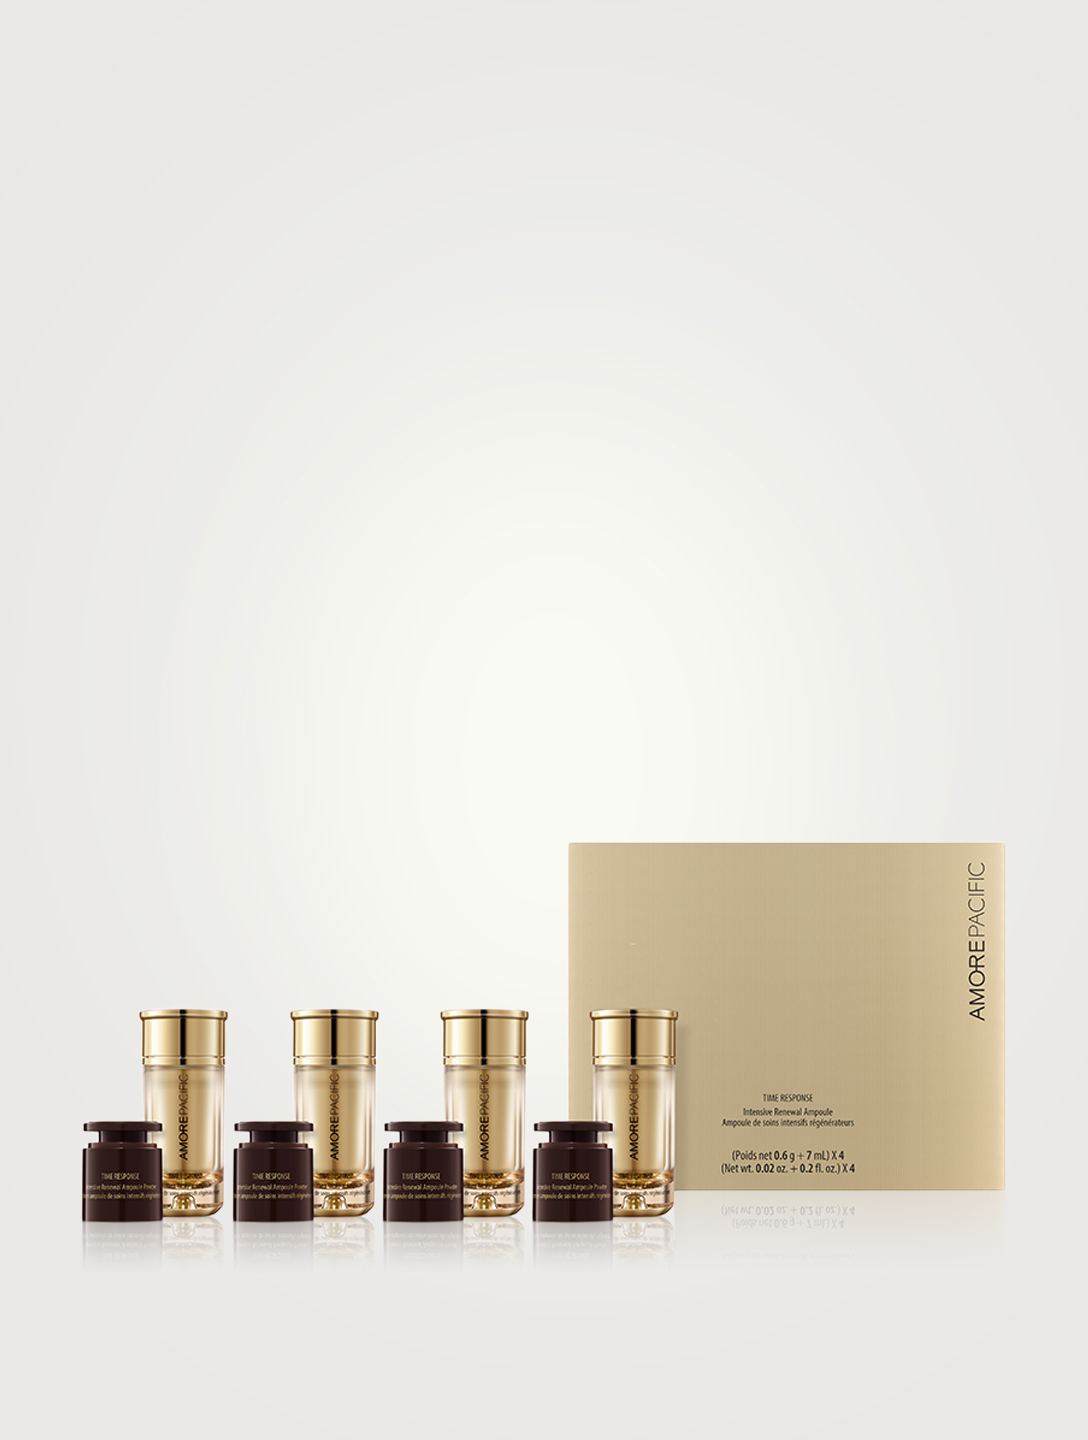 AMOREPACIFIC Time Response Intensive Renewal Ampoule Beauty